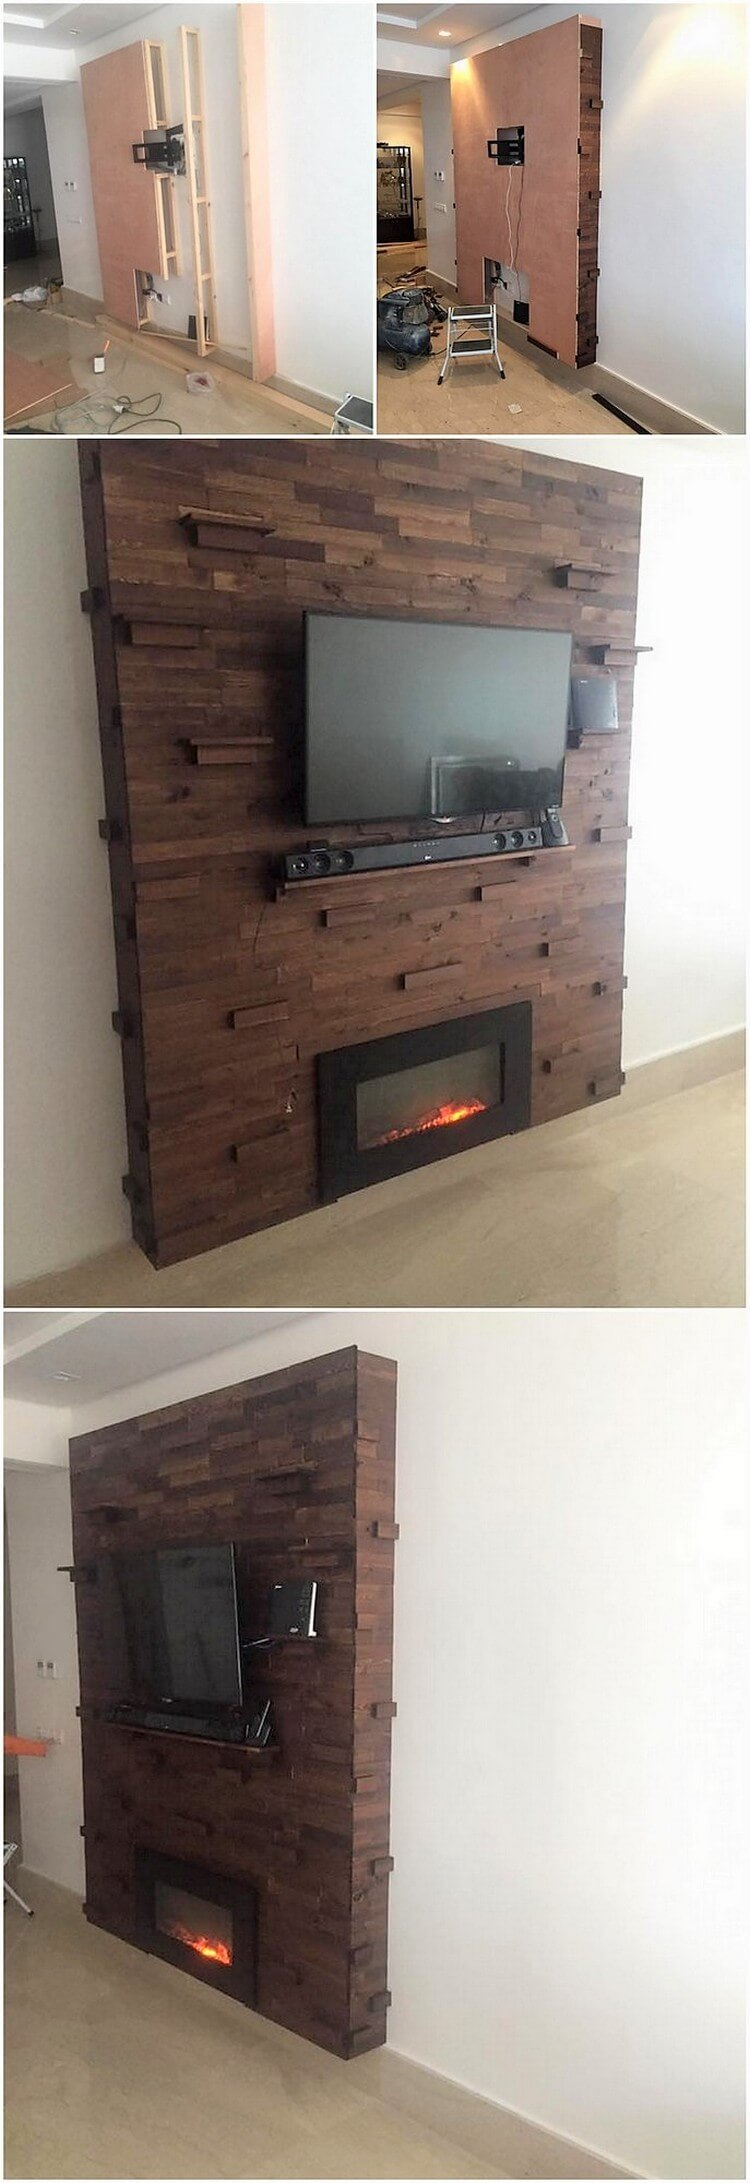 DIY Pallet Wall Paneling with LED Holder